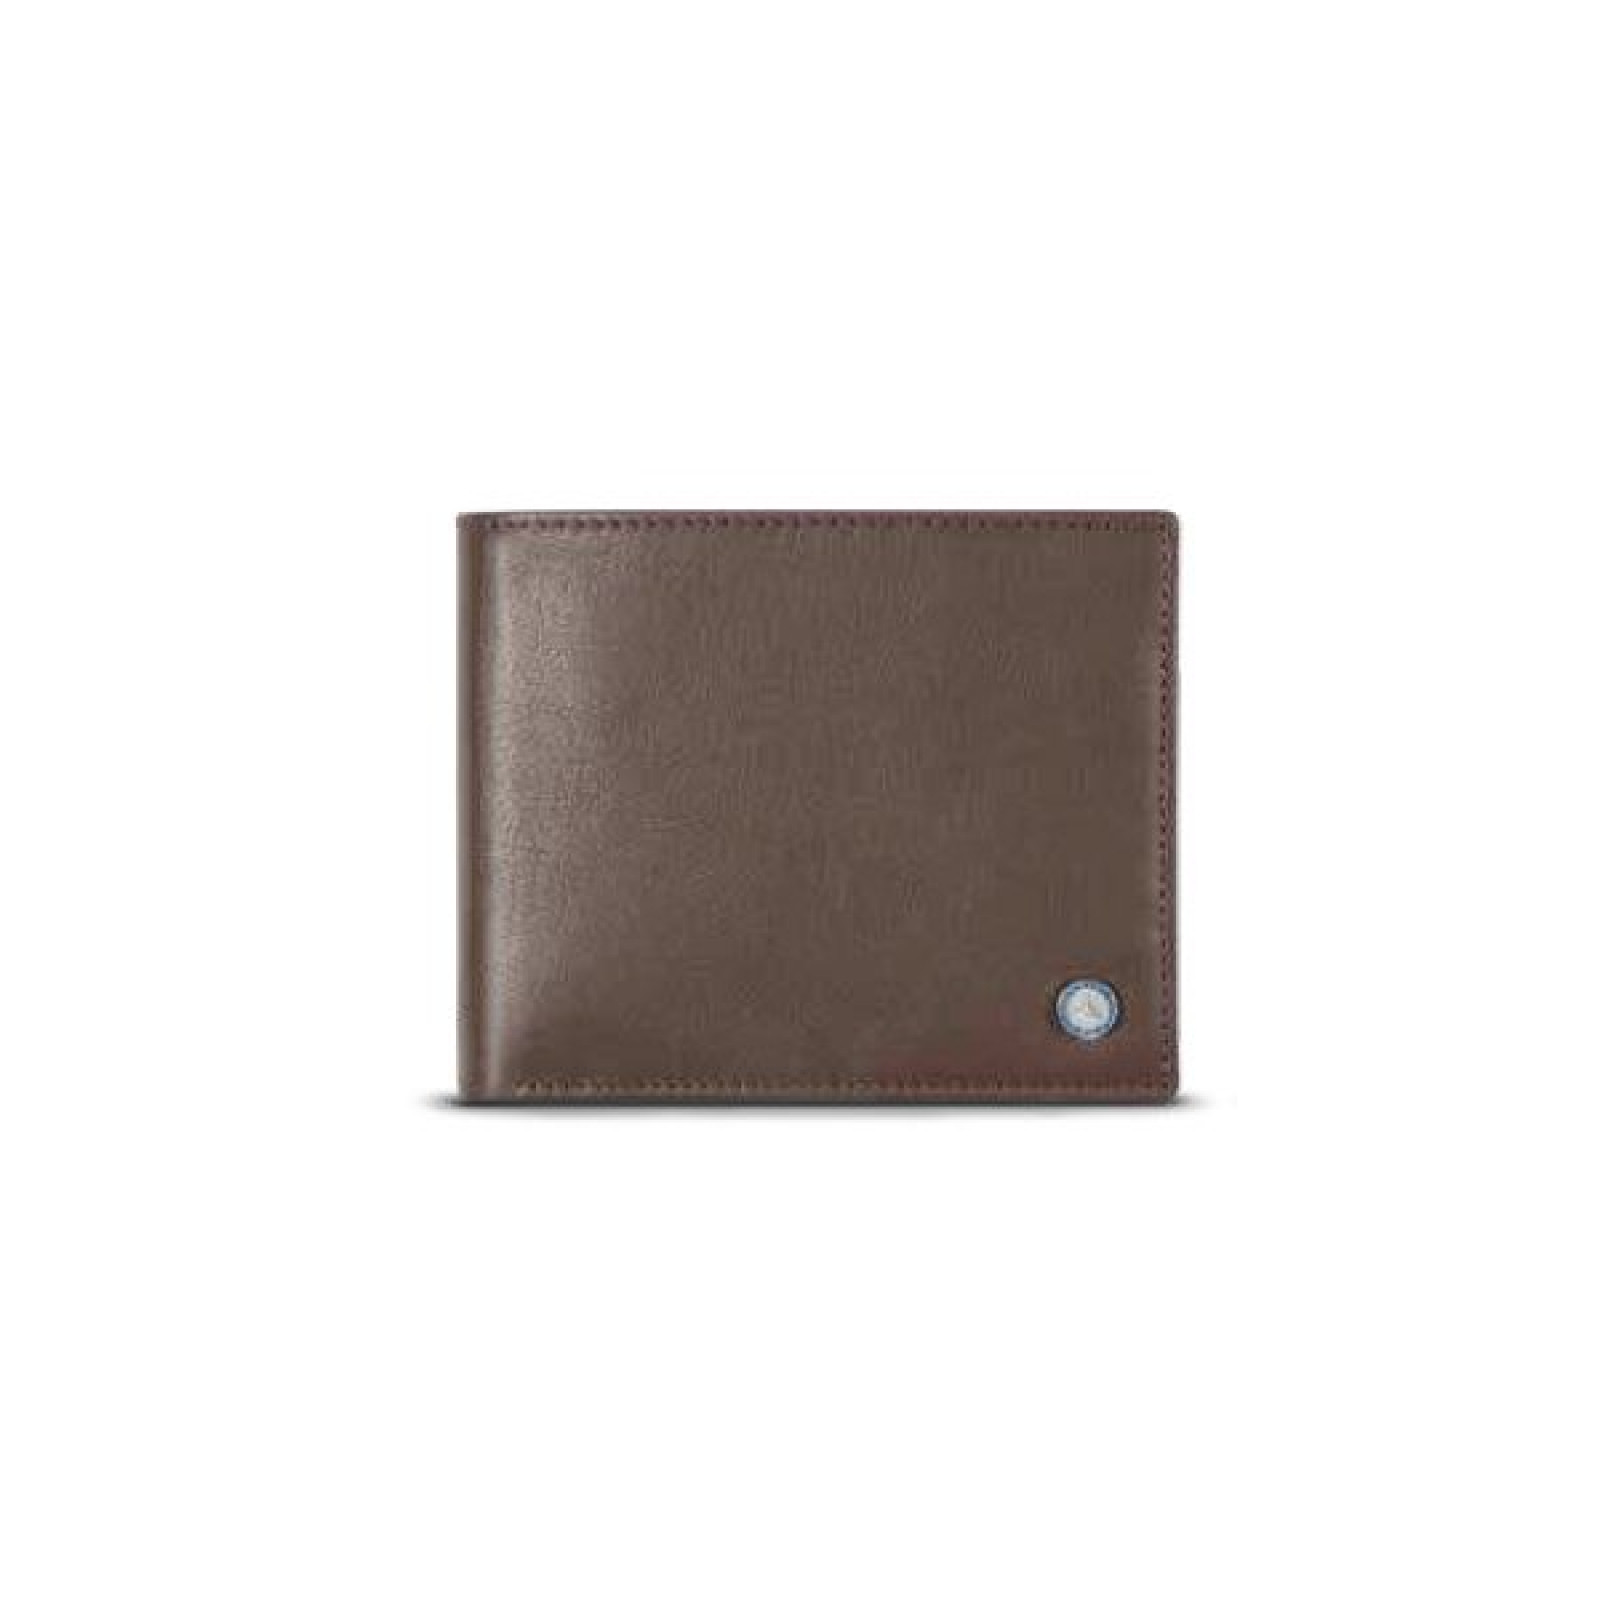 mercedes benz official leather classic wallet brown. Black Bedroom Furniture Sets. Home Design Ideas